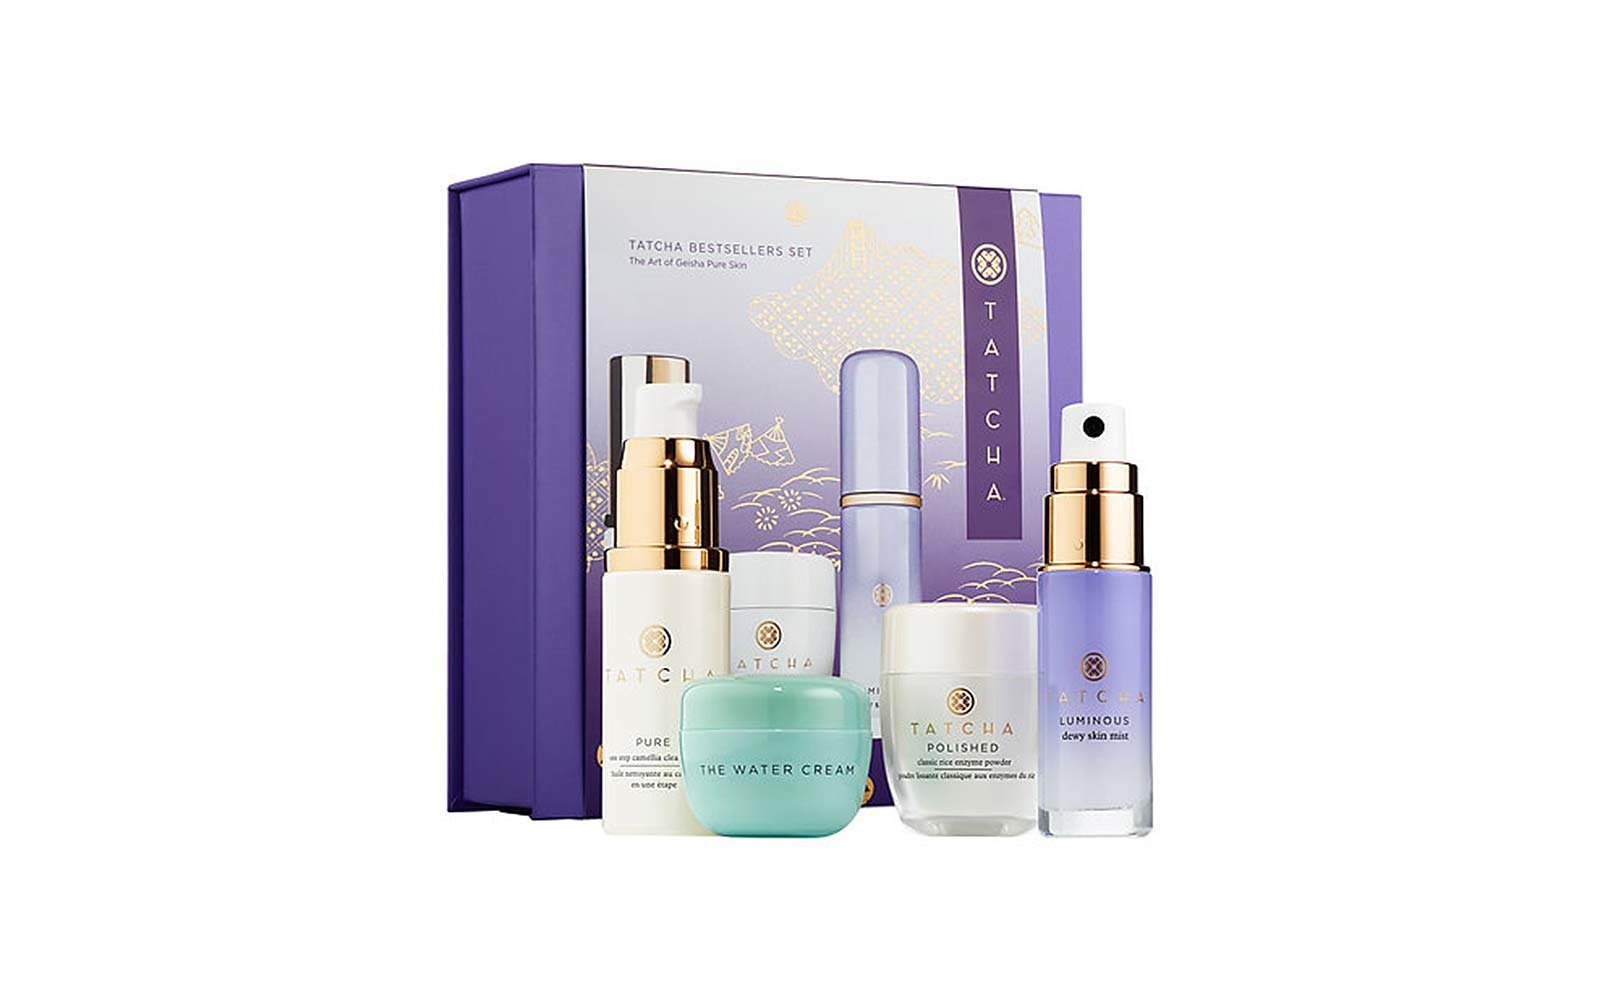 Travel Skincare Set Kits Tatcha Bestsellers